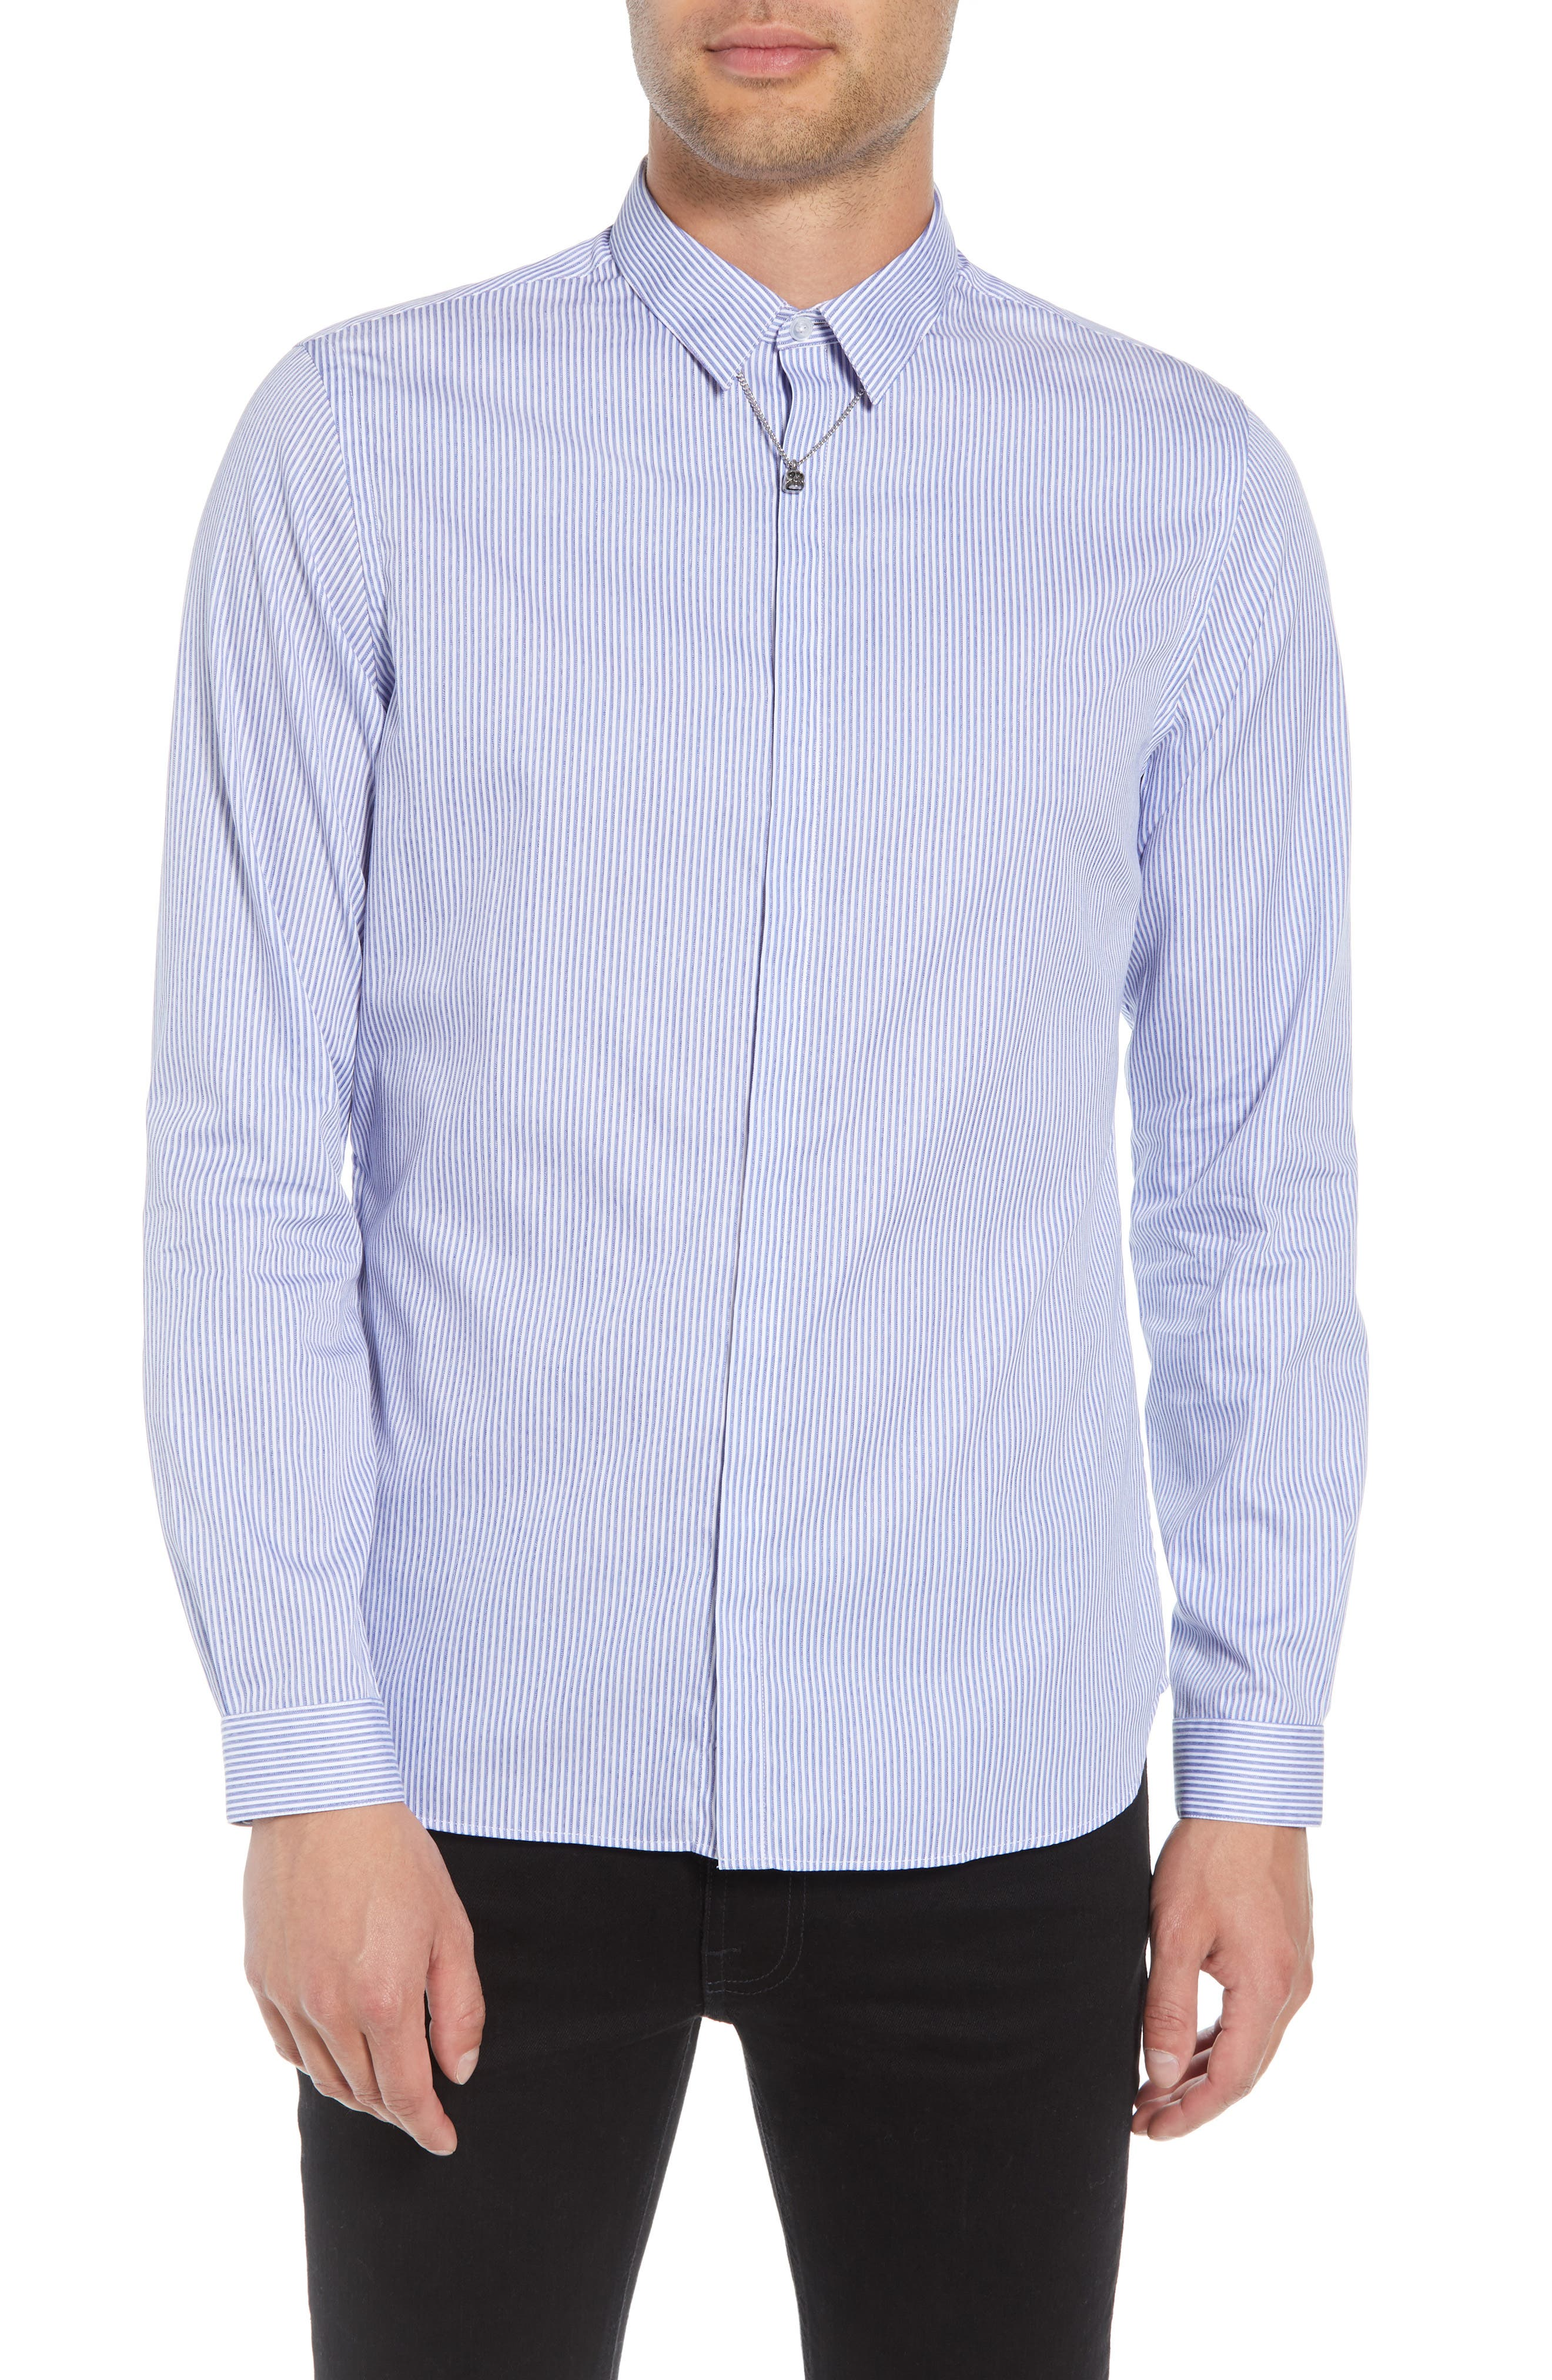 THE KOOPLES Slim Fit Stripe Sport Shirt in Navy And White Stripe